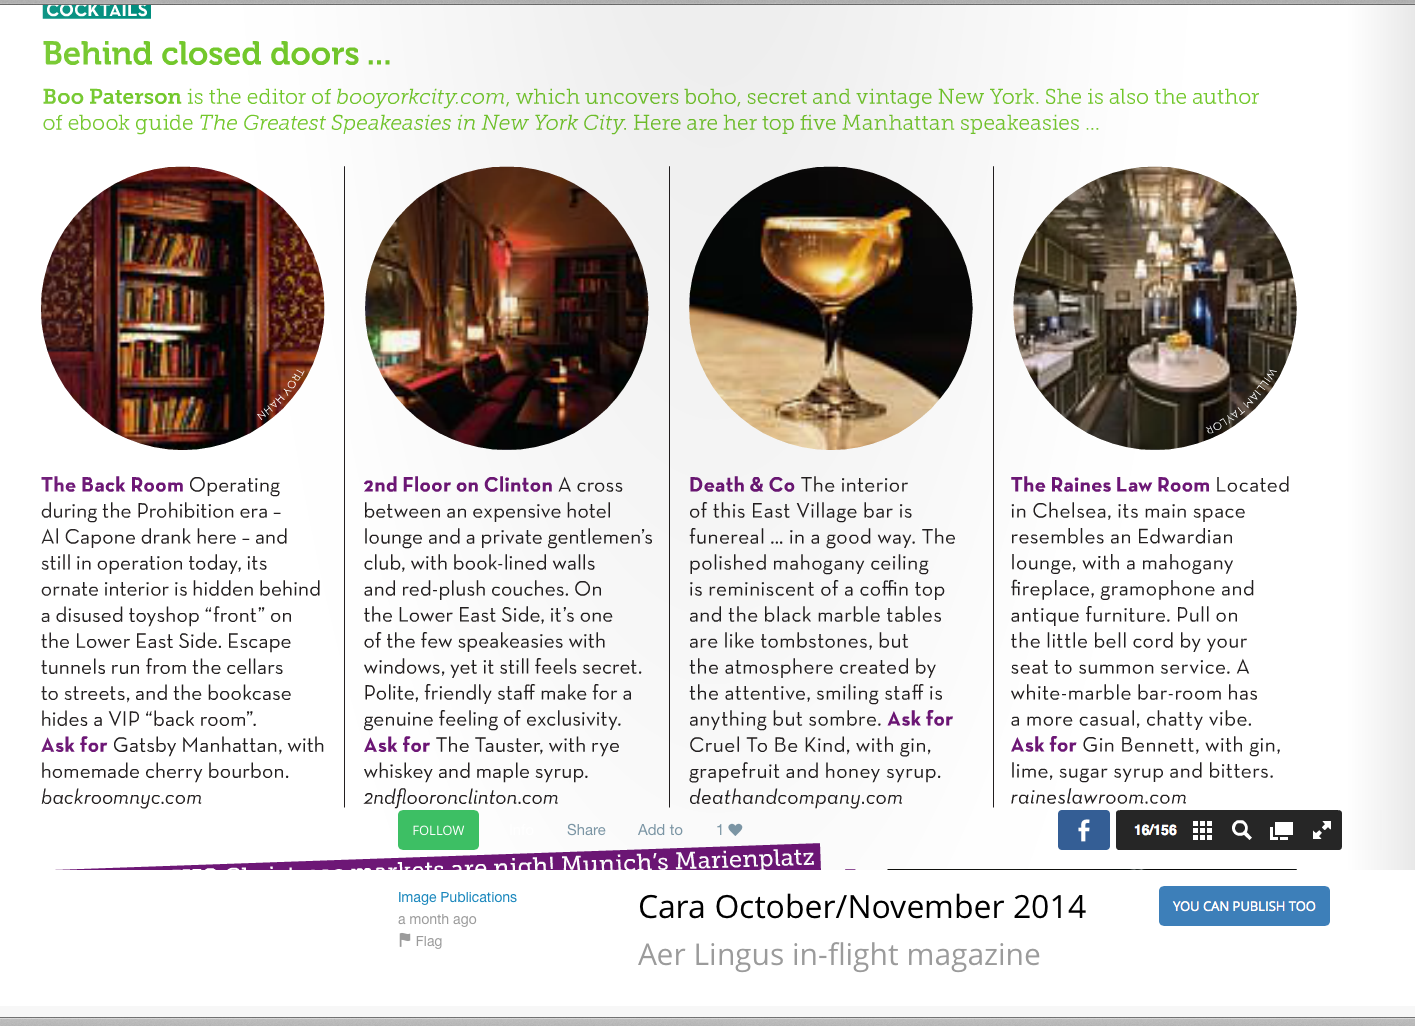 BYC speakeasies CARA Aer Lingus mag 28.10.14 copy